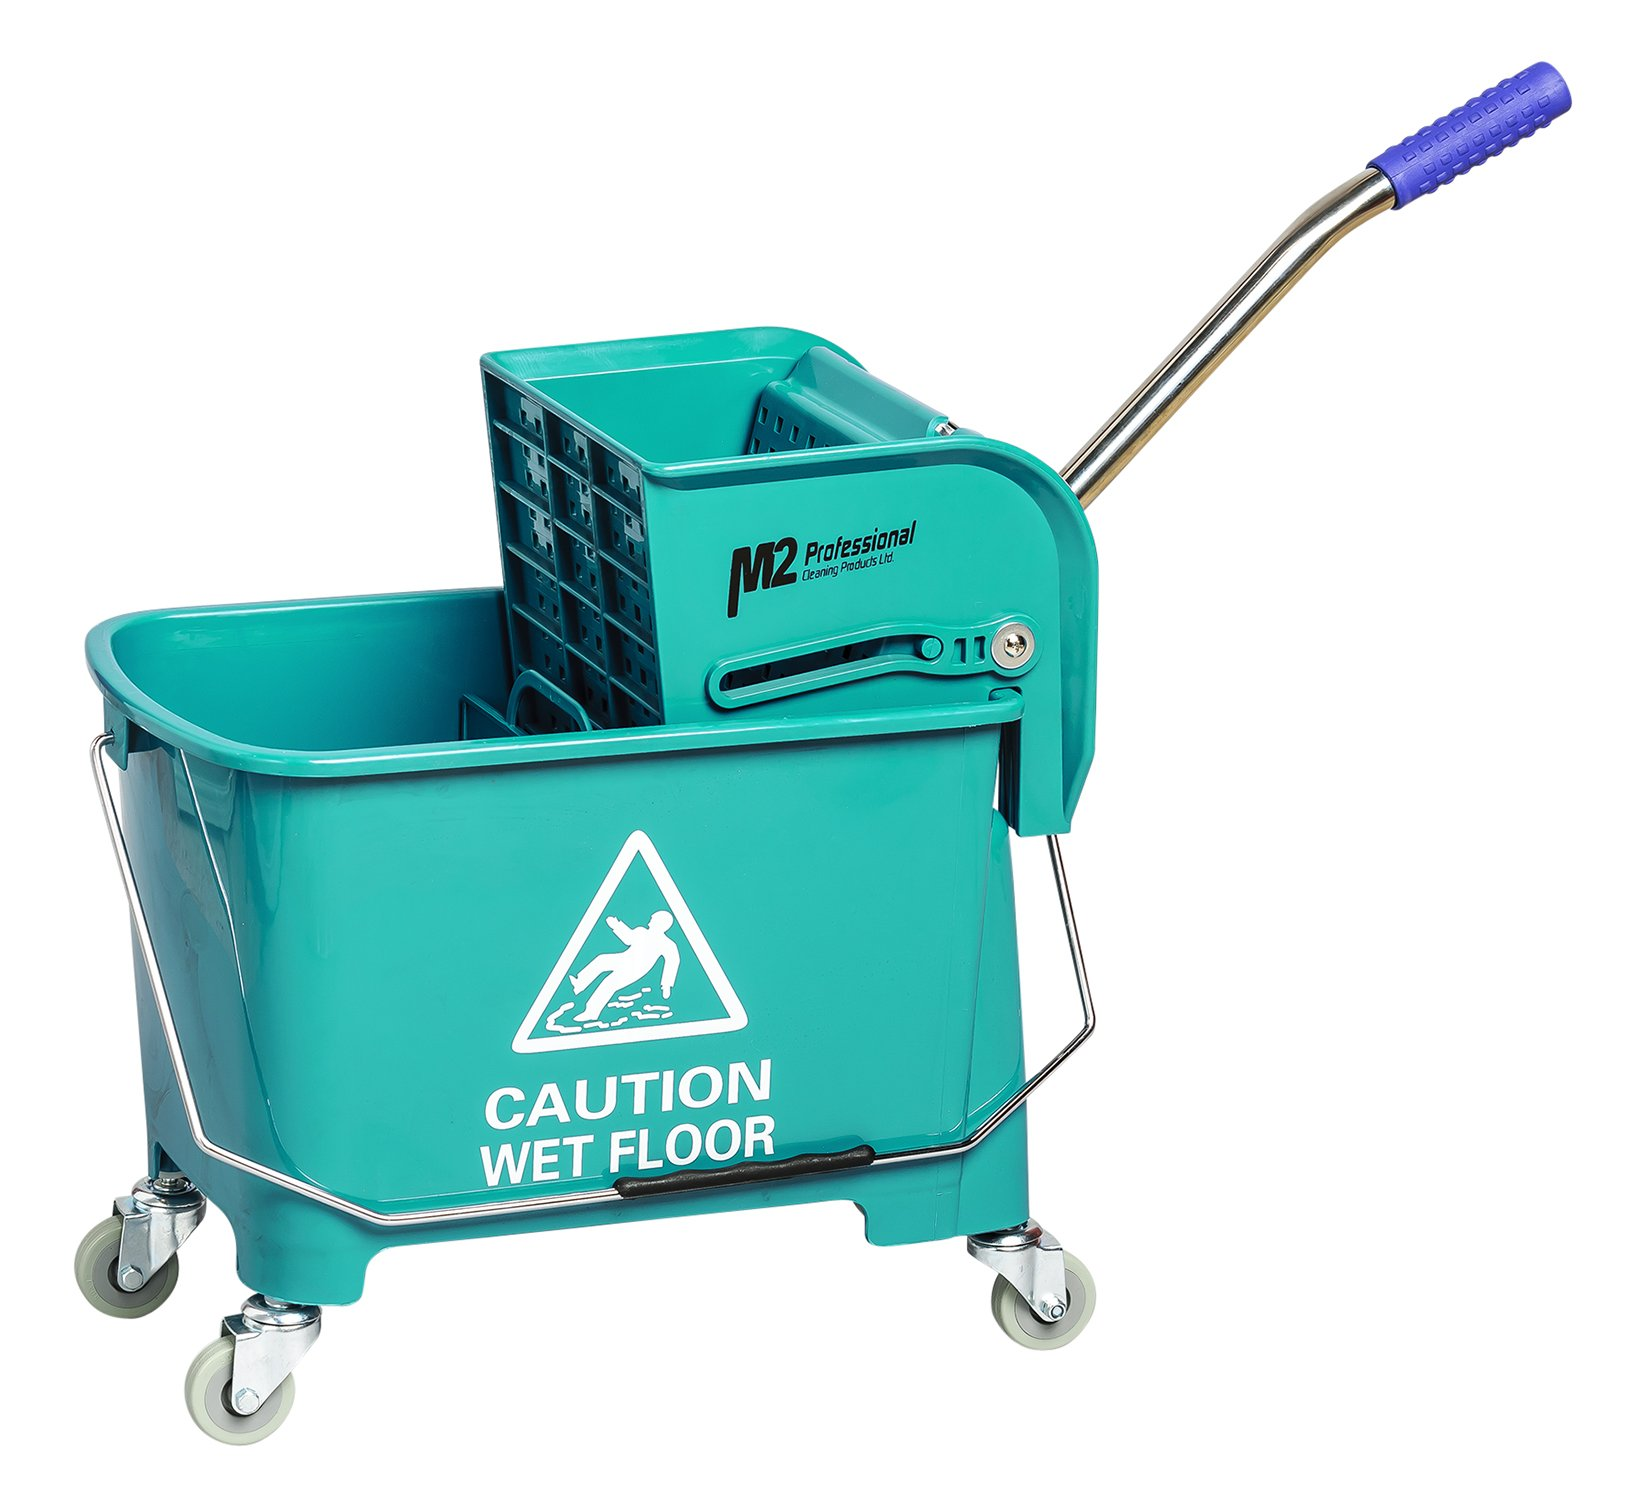 M2 Professional Junior Commercial Mop Bucket with Side Press Wringer and Wheels, 23 Quart/6 Gallon Capacity - Green